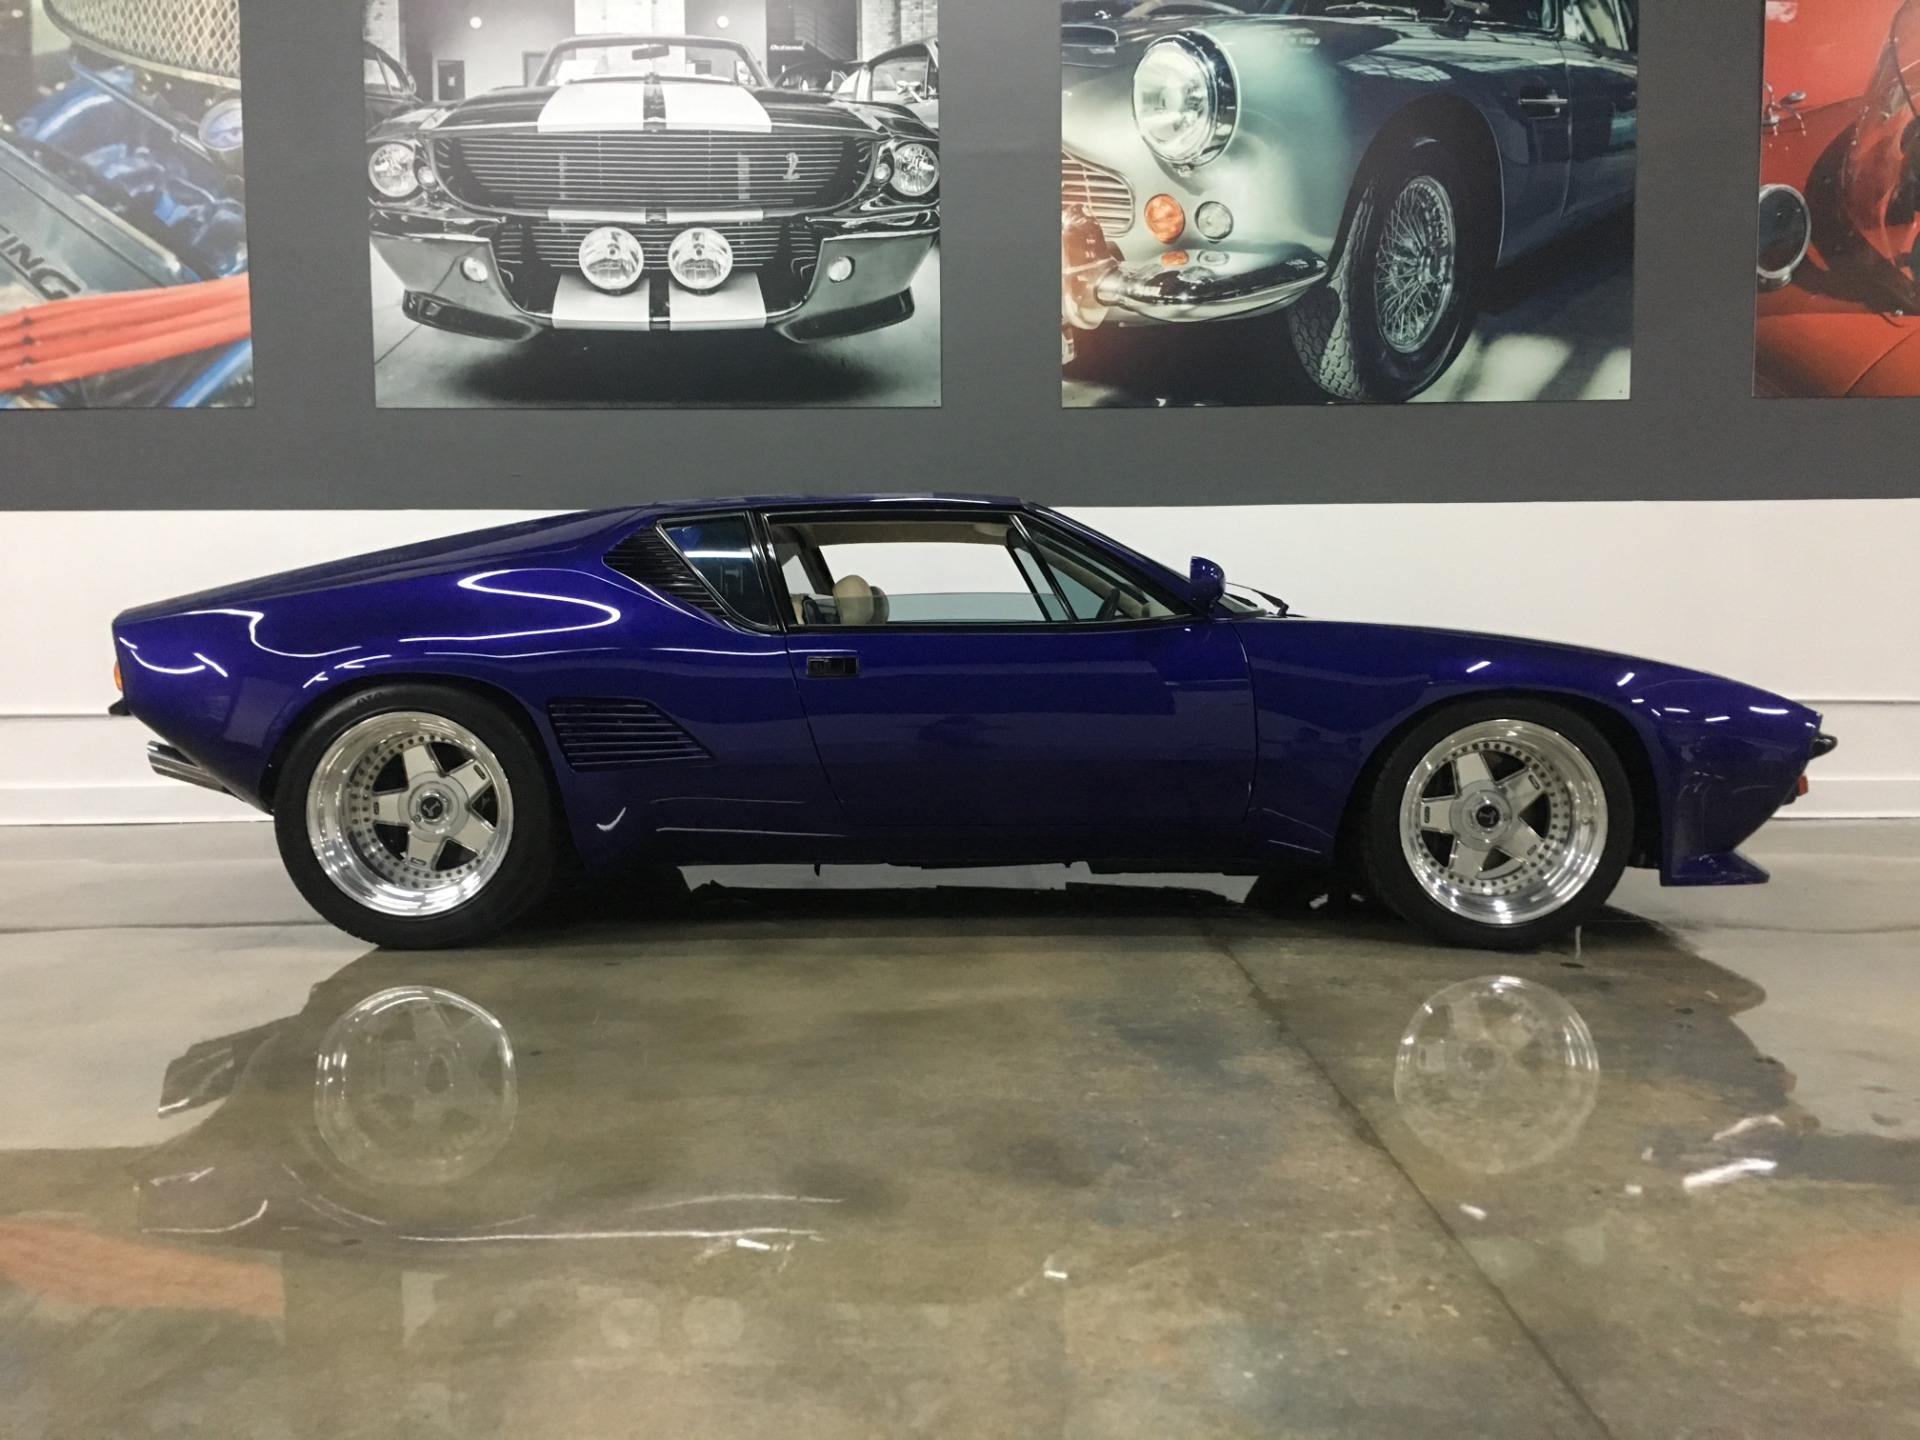 1972 De Tomaso Pantera For Sale in Miami FL G